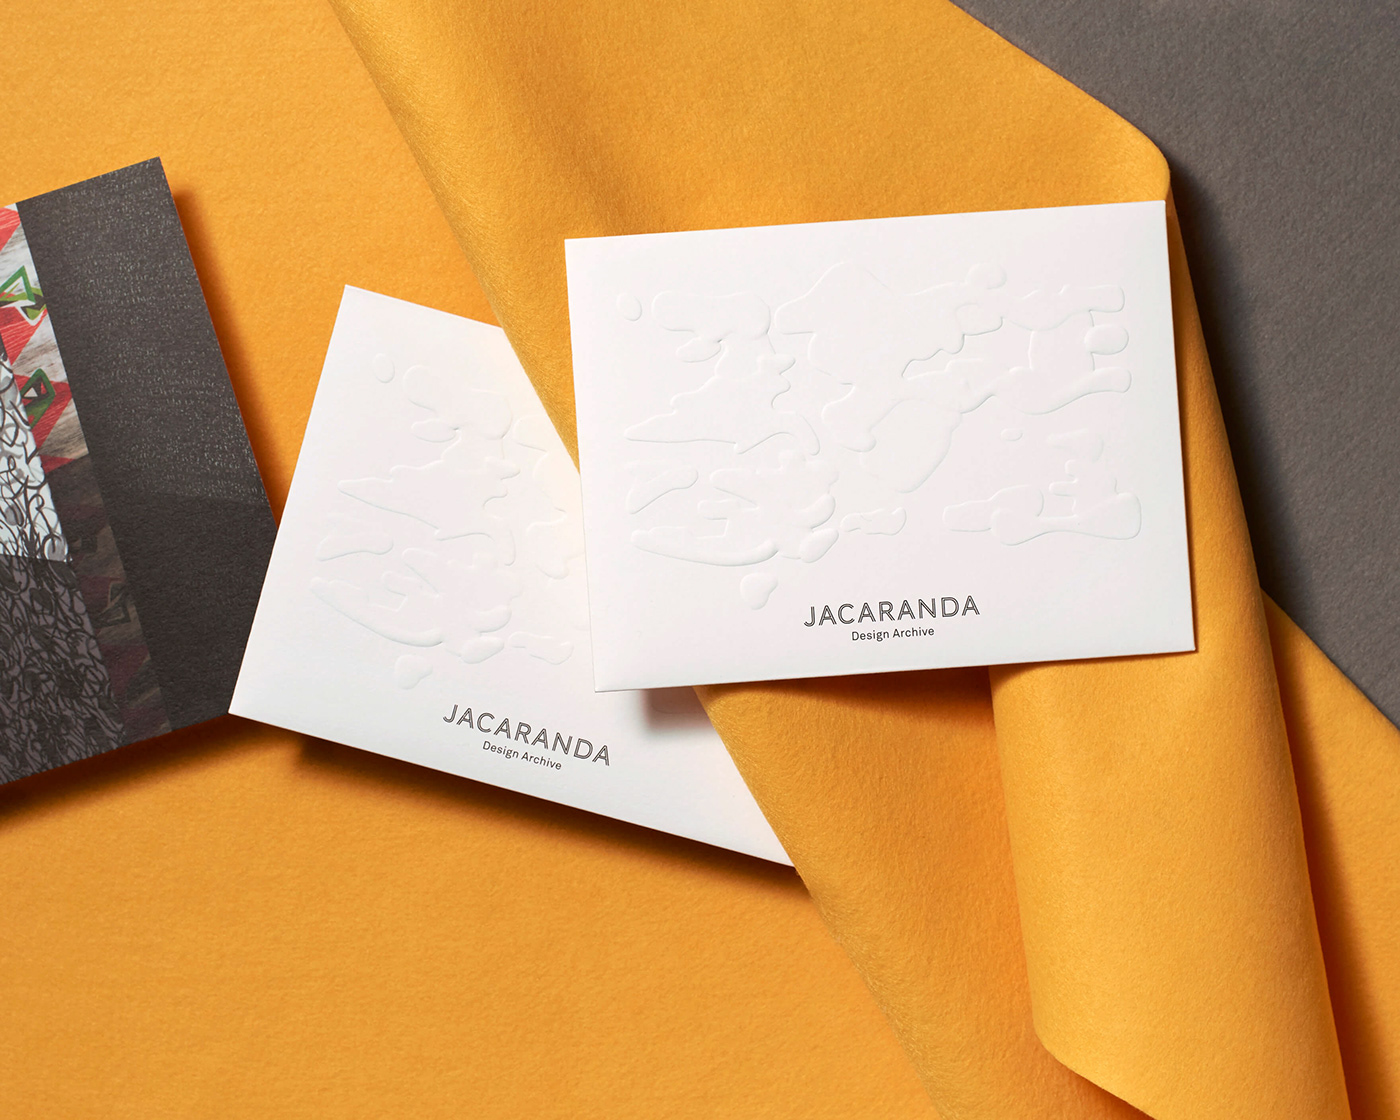 Jacaranda Design Archive _ New Identity